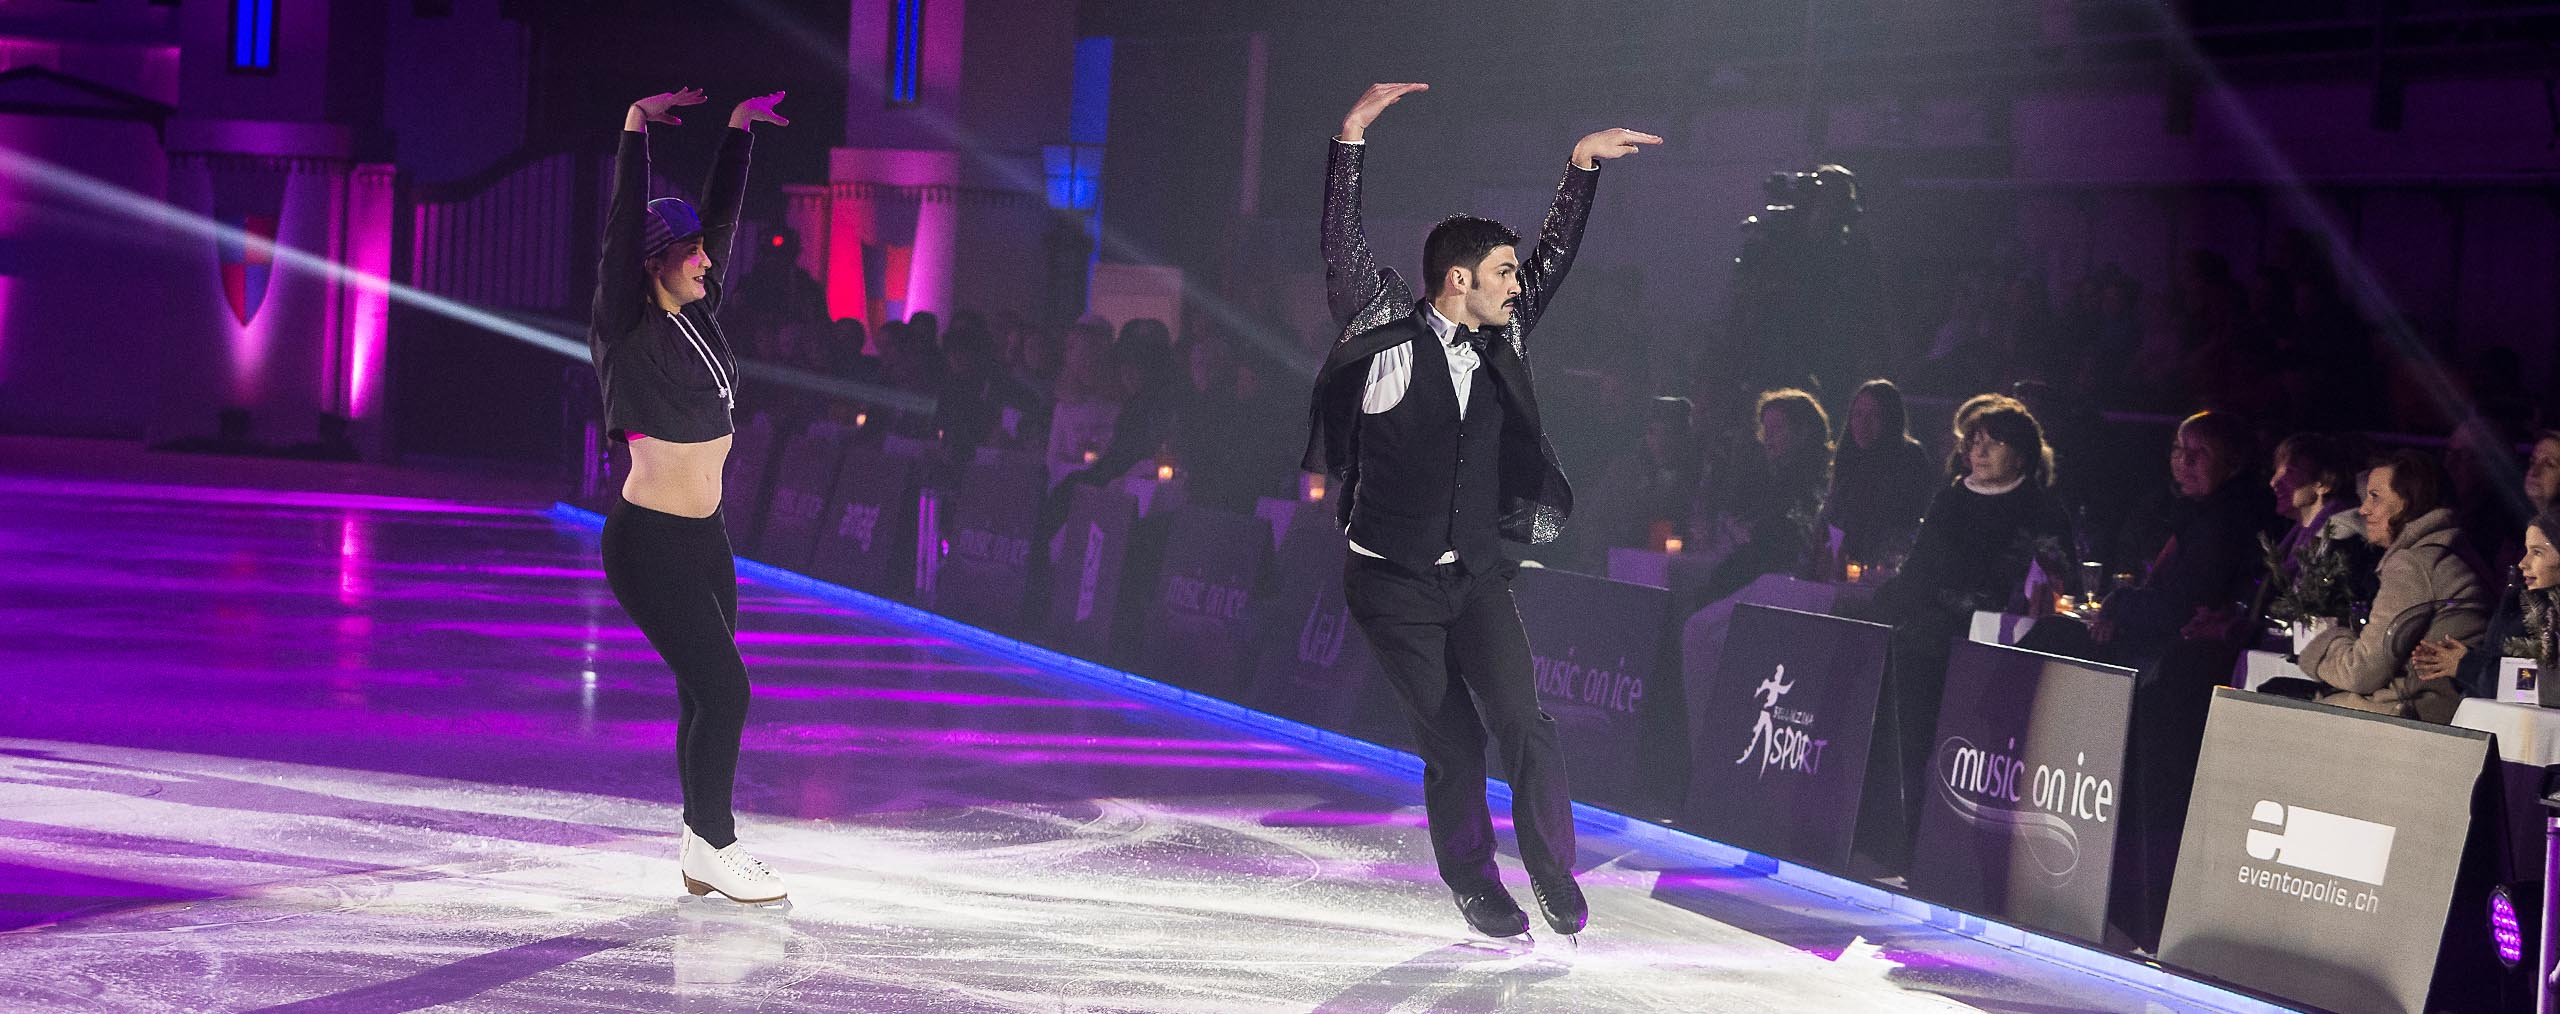 Samuel Contesti Music on Ice